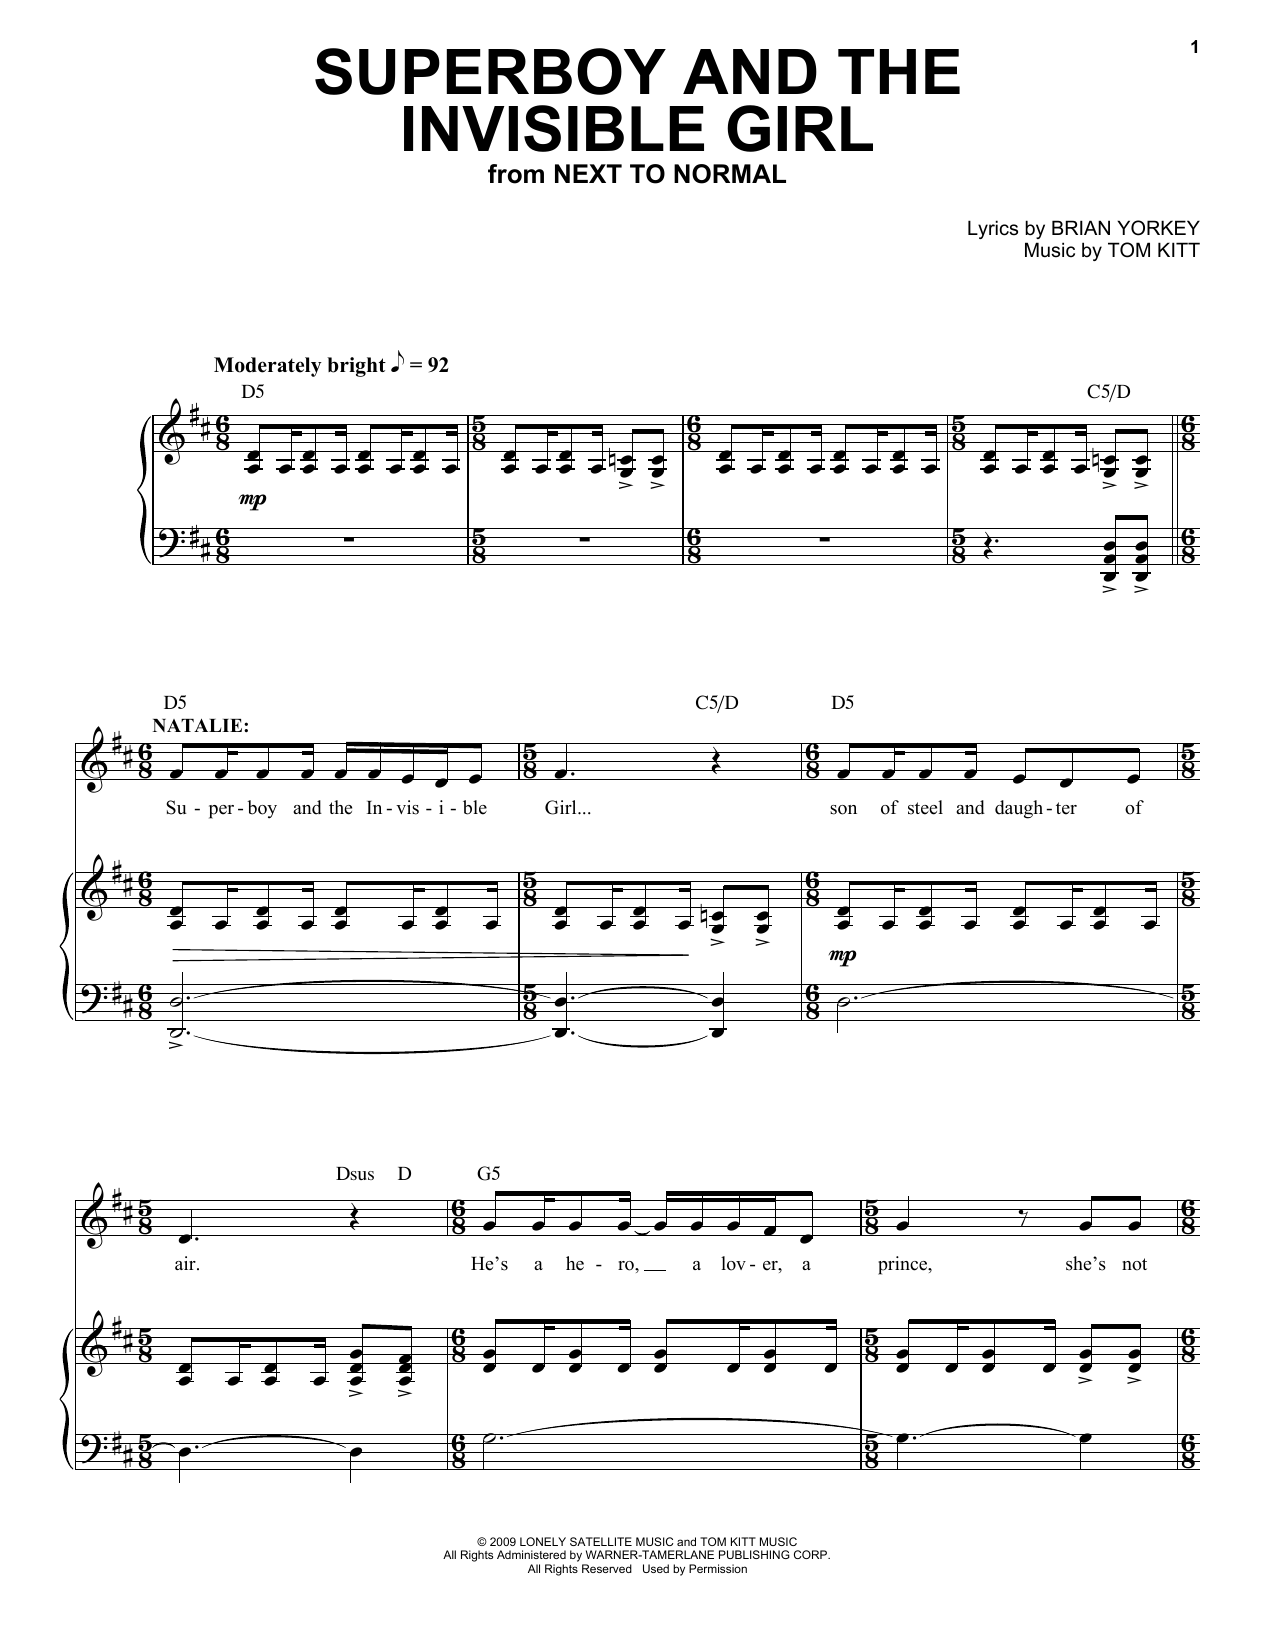 Aaron Tveit Superboy And The Invisible Girl (from Next to Normal) sheet music notes and chords